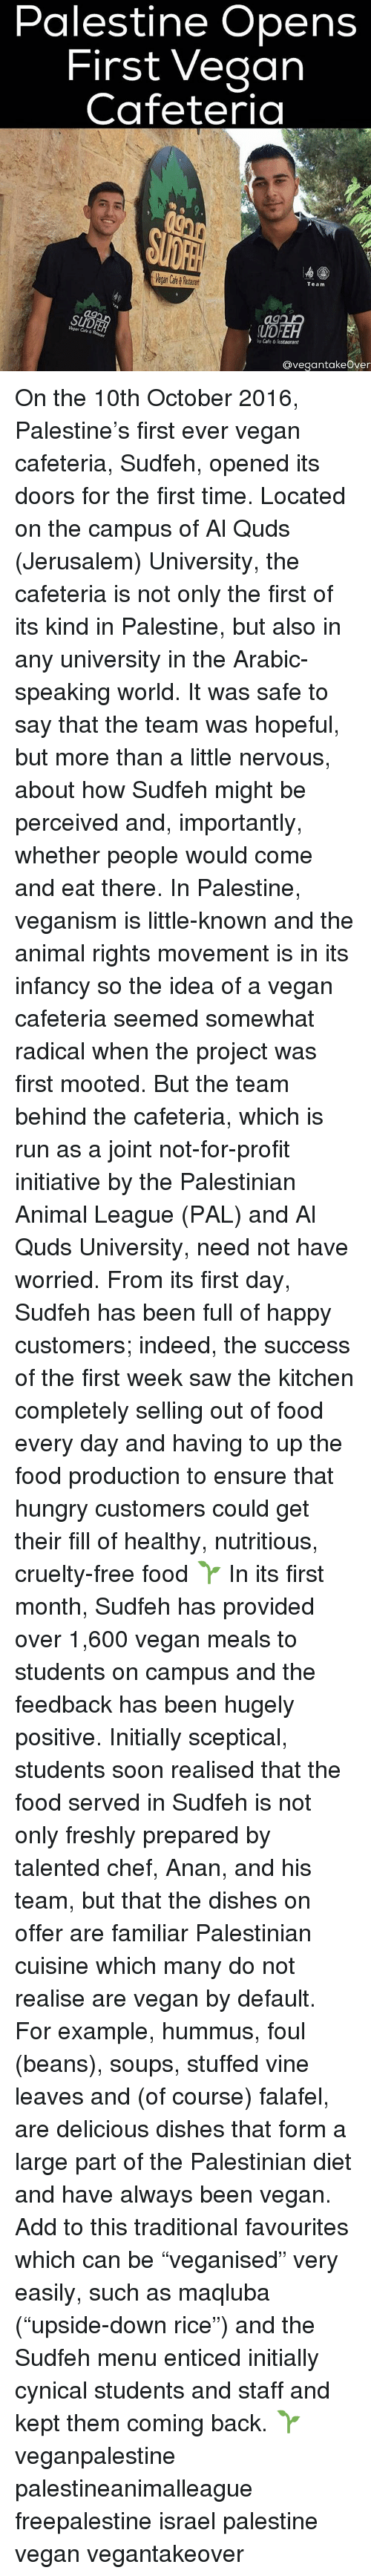 """Memes, Cynical, and Dish: Palestine Opens  First Vegan  Cafeteria  Team  Vegan Cafe 6  Cafe &lestaurant  Ovegantakeover On the 10th October 2016, Palestine's first ever vegan cafeteria, Sudfeh, opened its doors for the first time. Located on the campus of Al Quds (Jerusalem) University, the cafeteria is not only the first of its kind in Palestine, but also in any university in the Arabic-speaking world. It was safe to say that the team was hopeful, but more than a little nervous, about how Sudfeh might be perceived and, importantly, whether people would come and eat there. In Palestine, veganism is little-known and the animal rights movement is in its infancy so the idea of a vegan cafeteria seemed somewhat radical when the project was first mooted. But the team behind the cafeteria, which is run as a joint not-for-profit initiative by the Palestinian Animal League (PAL) and Al Quds University, need not have worried. From its first day, Sudfeh has been full of happy customers; indeed, the success of the first week saw the kitchen completely selling out of food every day and having to up the food production to ensure that hungry customers could get their fill of healthy, nutritious, cruelty-free food 🌱 In its first month, Sudfeh has provided over 1,600 vegan meals to students on campus and the feedback has been hugely positive. Initially sceptical, students soon realised that the food served in Sudfeh is not only freshly prepared by talented chef, Anan, and his team, but that the dishes on offer are familiar Palestinian cuisine which many do not realise are vegan by default. For example, hummus, foul (beans), soups, stuffed vine leaves and (of course) falafel, are delicious dishes that form a large part of the Palestinian diet and have always been vegan. Add to this traditional favourites which can be """"veganised"""" very easily, such as maqluba (""""upside-down rice"""") and the Sudfeh menu enticed initially cynical students and staff and kept them coming back. 🌱 veganpalesti"""